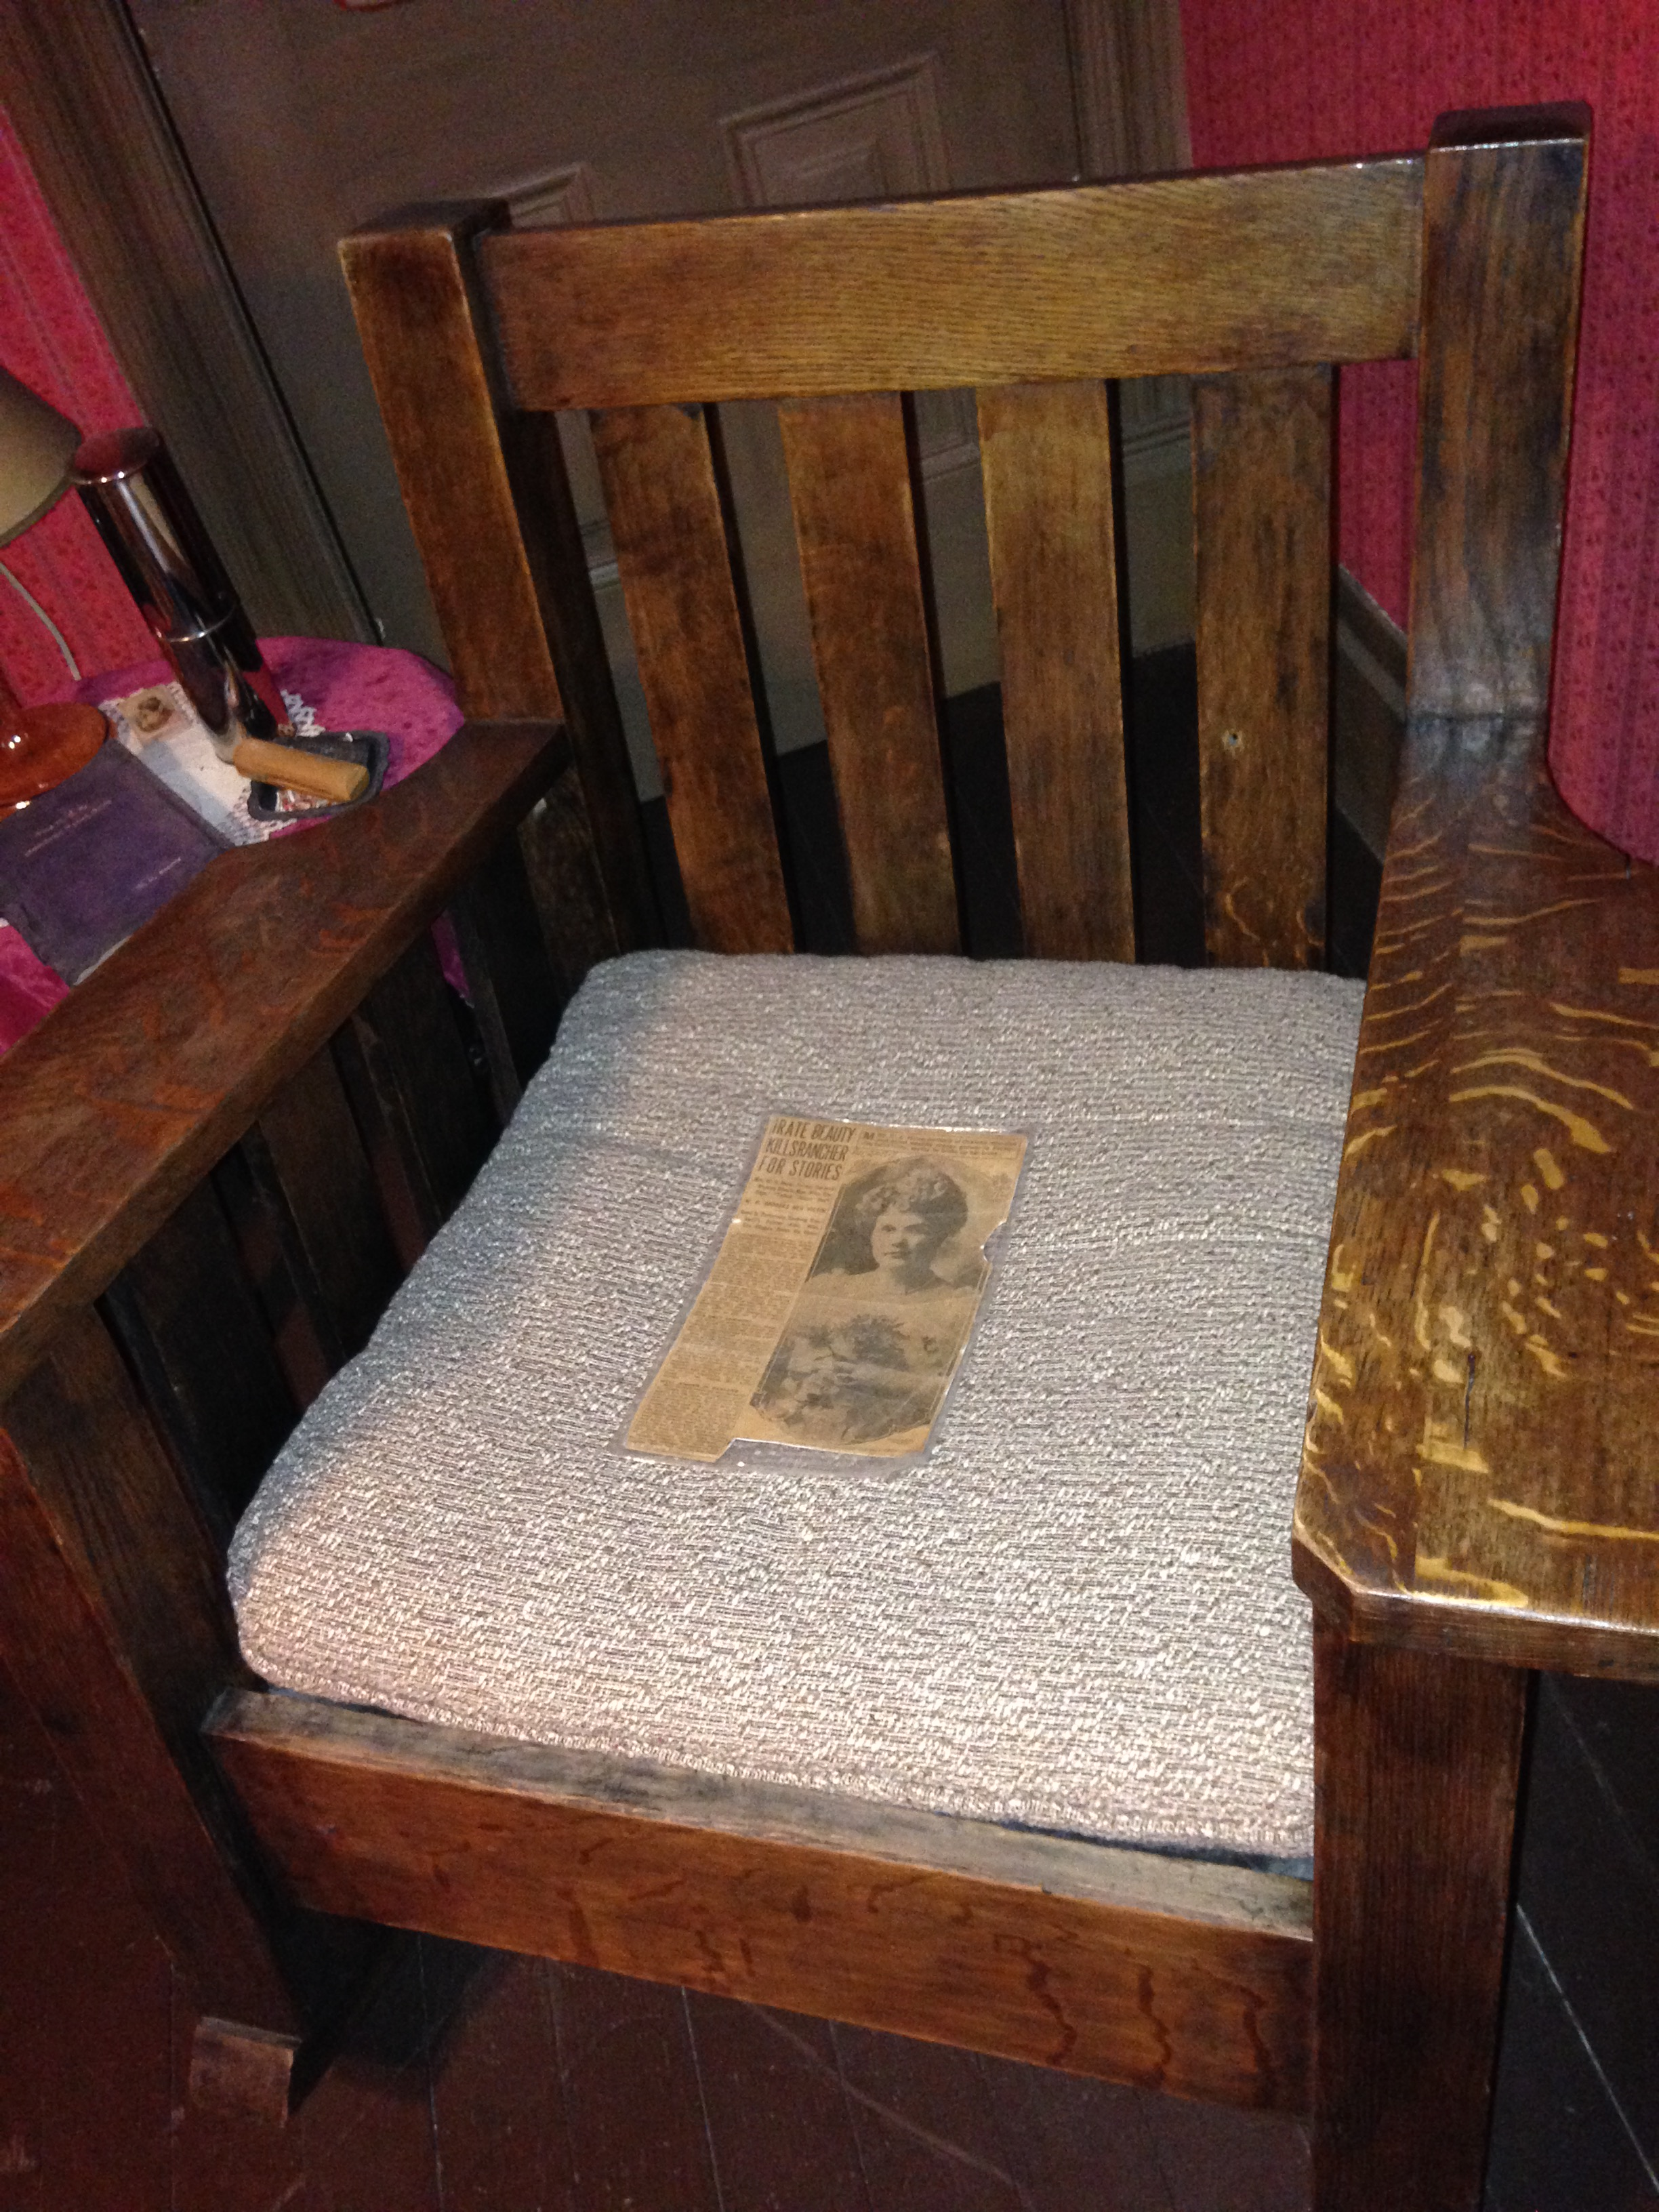 The Zaluds' son-in-law, William Brooks, was murdered in this chair by a Mrs. Juliette Howe in 1917. The chair, featuring bullet holes from the shooting, is on display in the house.